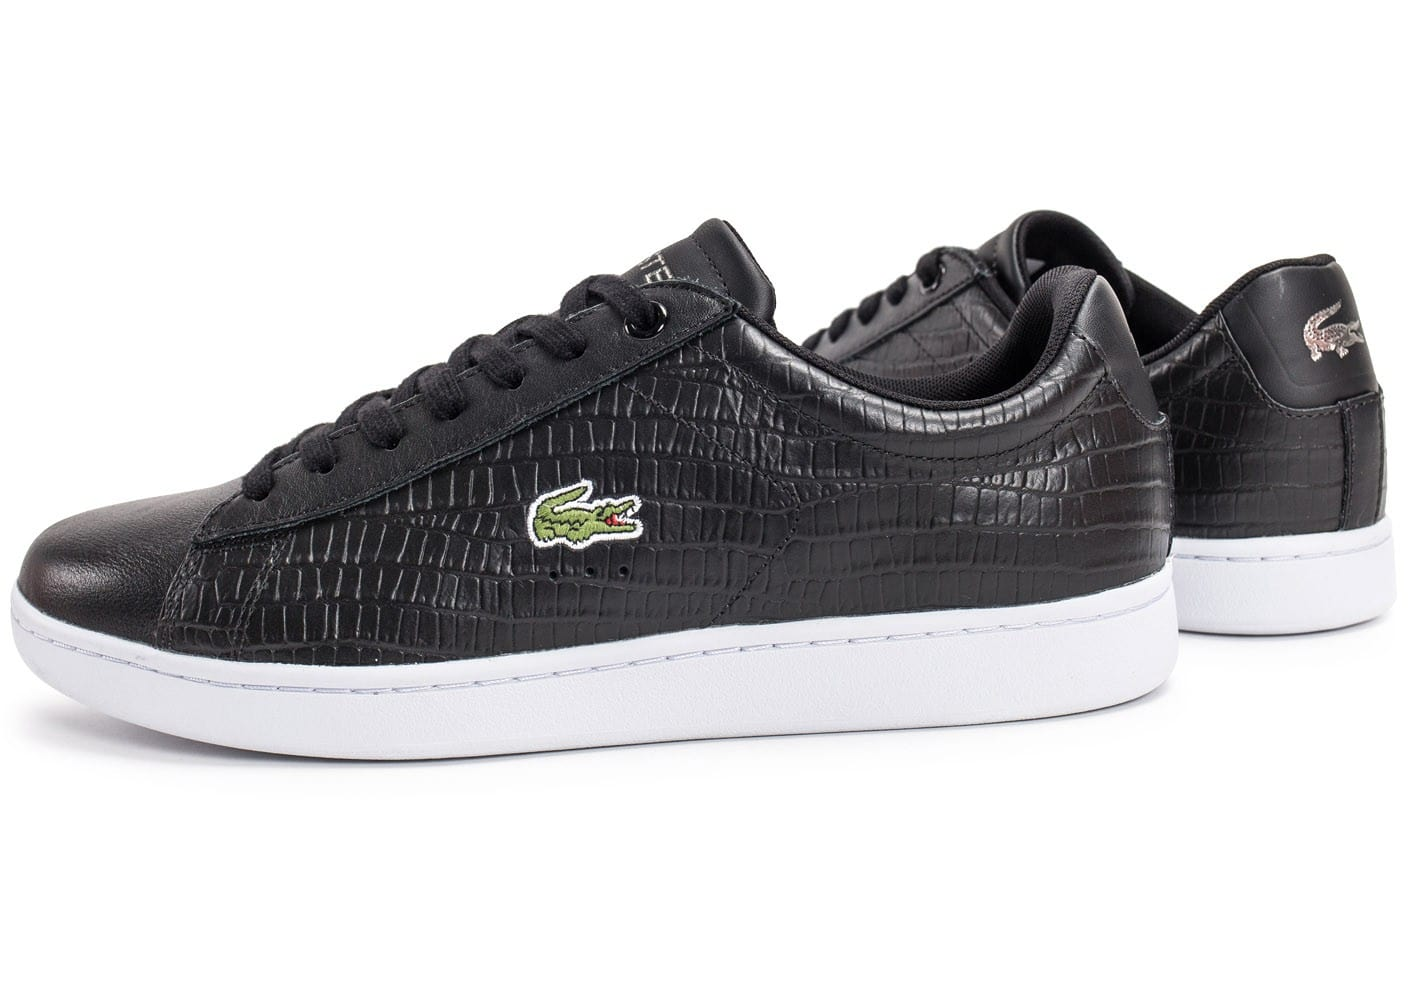 Lacoste carnaby evo croc noire chaussures homme chausport - Lacoste carnaby evo cls baskets en cuir perfore ...